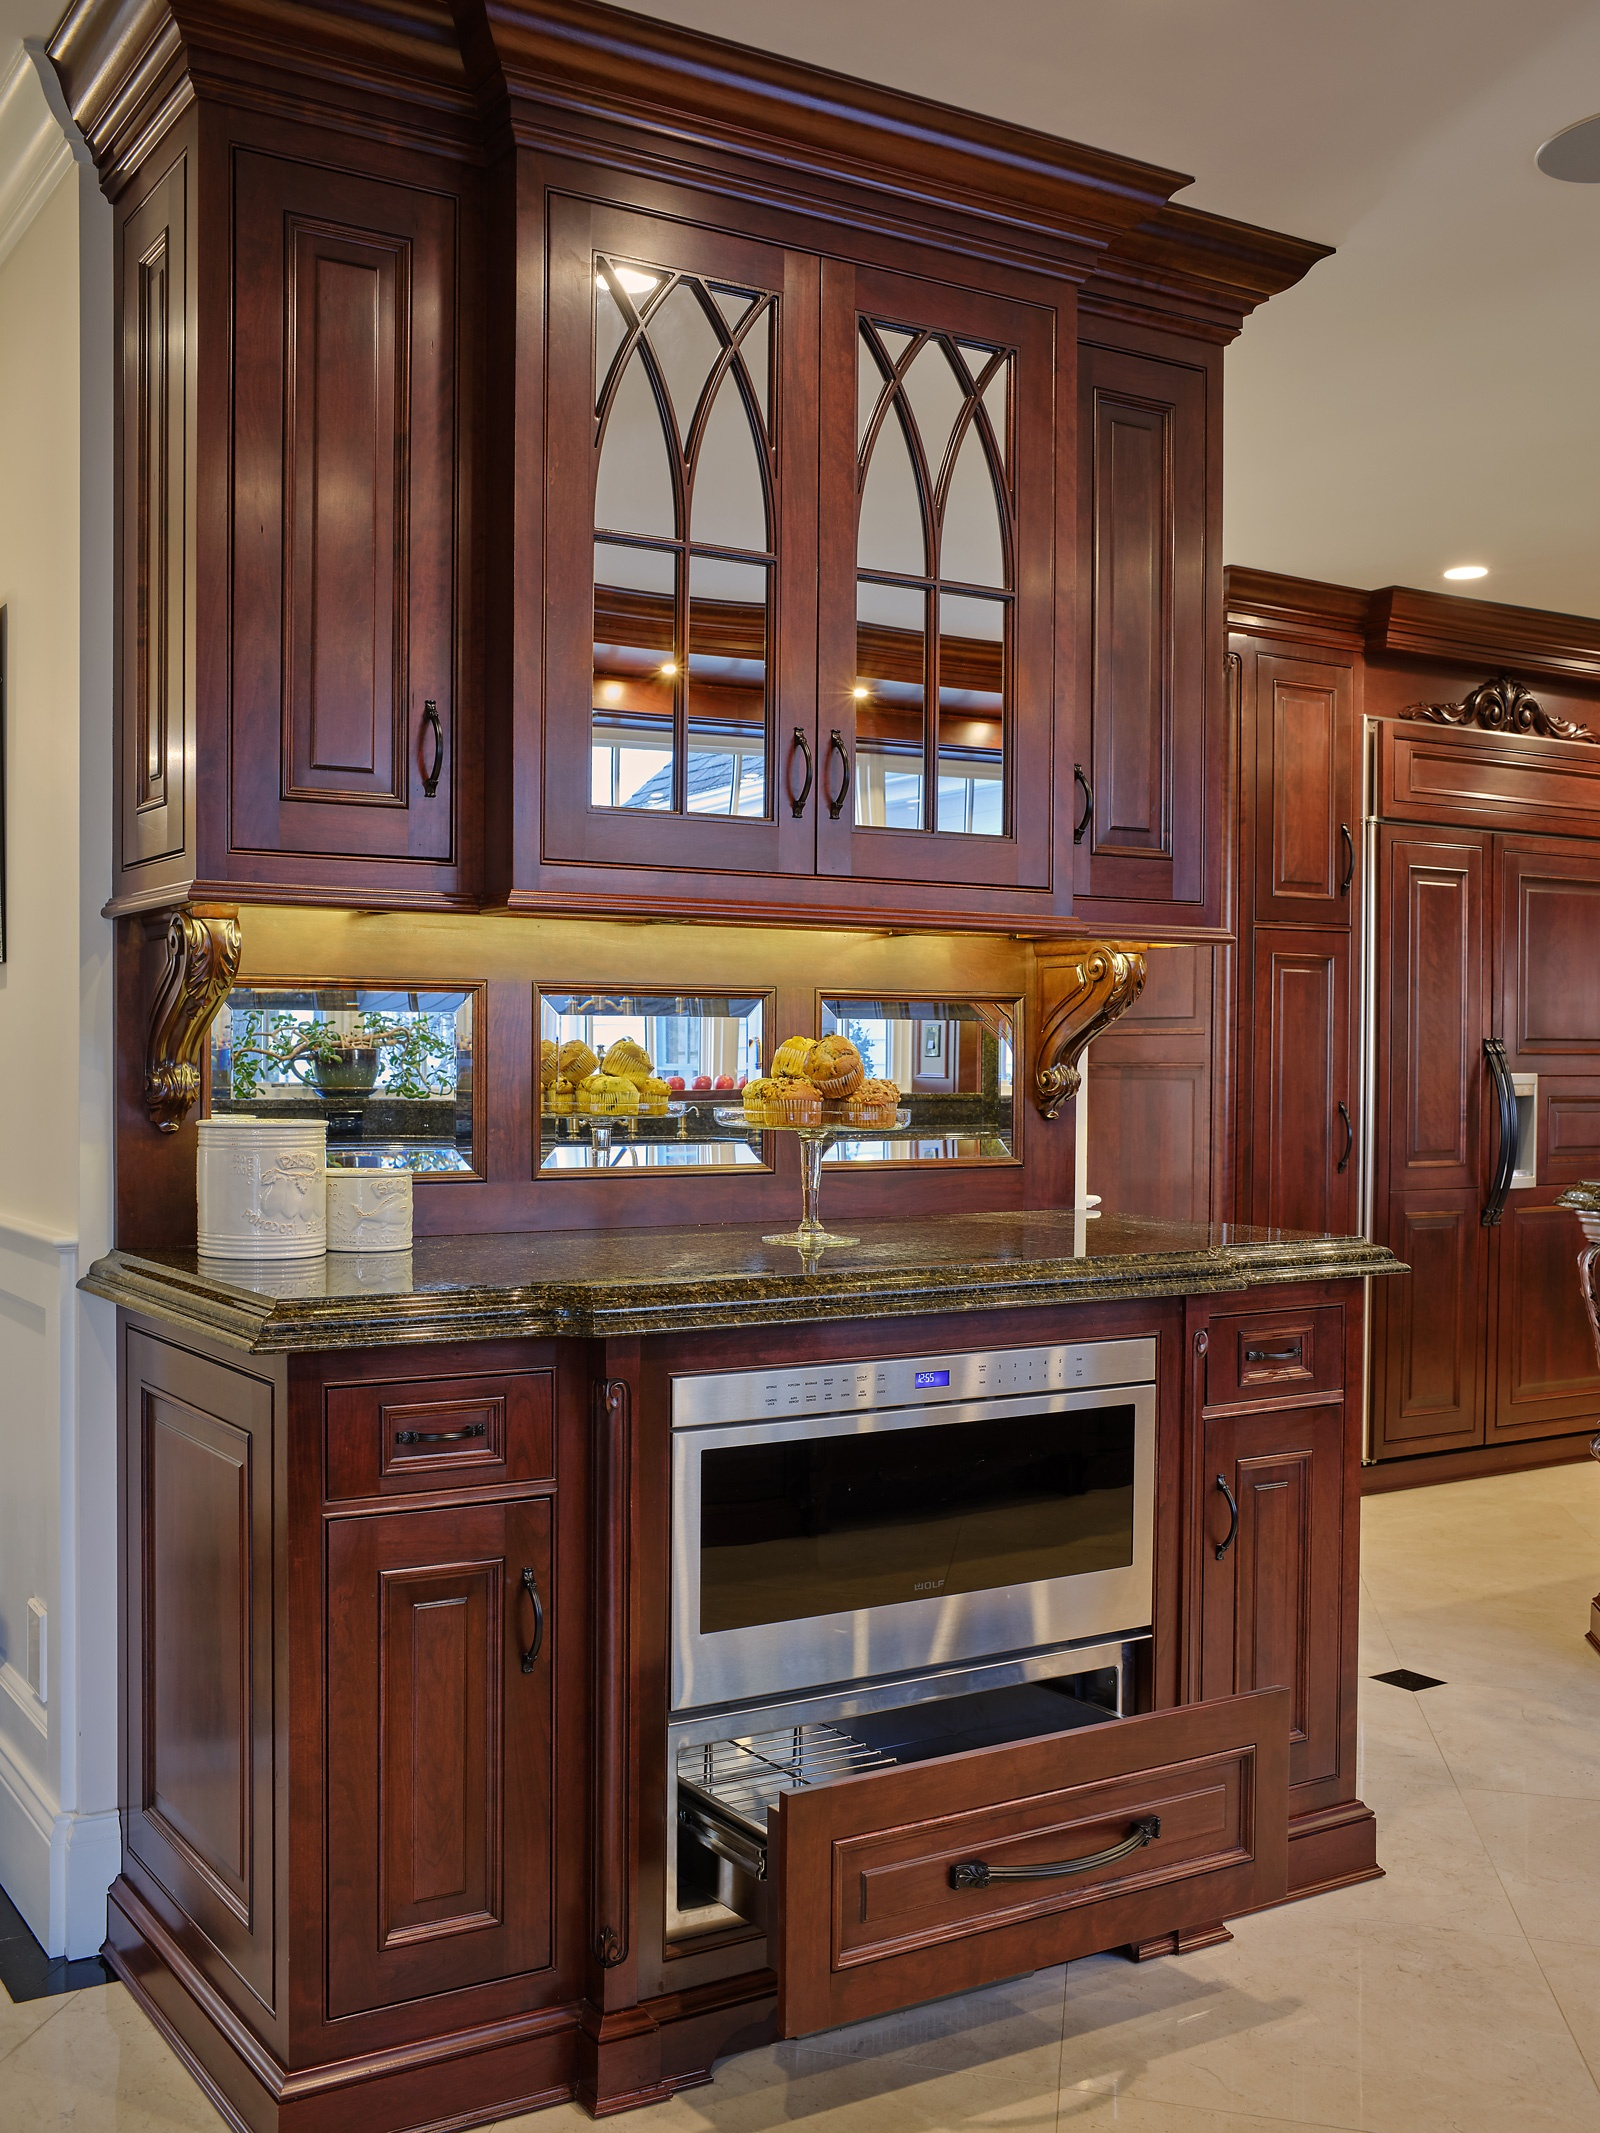 Elegant Cherry Kitchen Design in Westport CT | The Kitchen ...